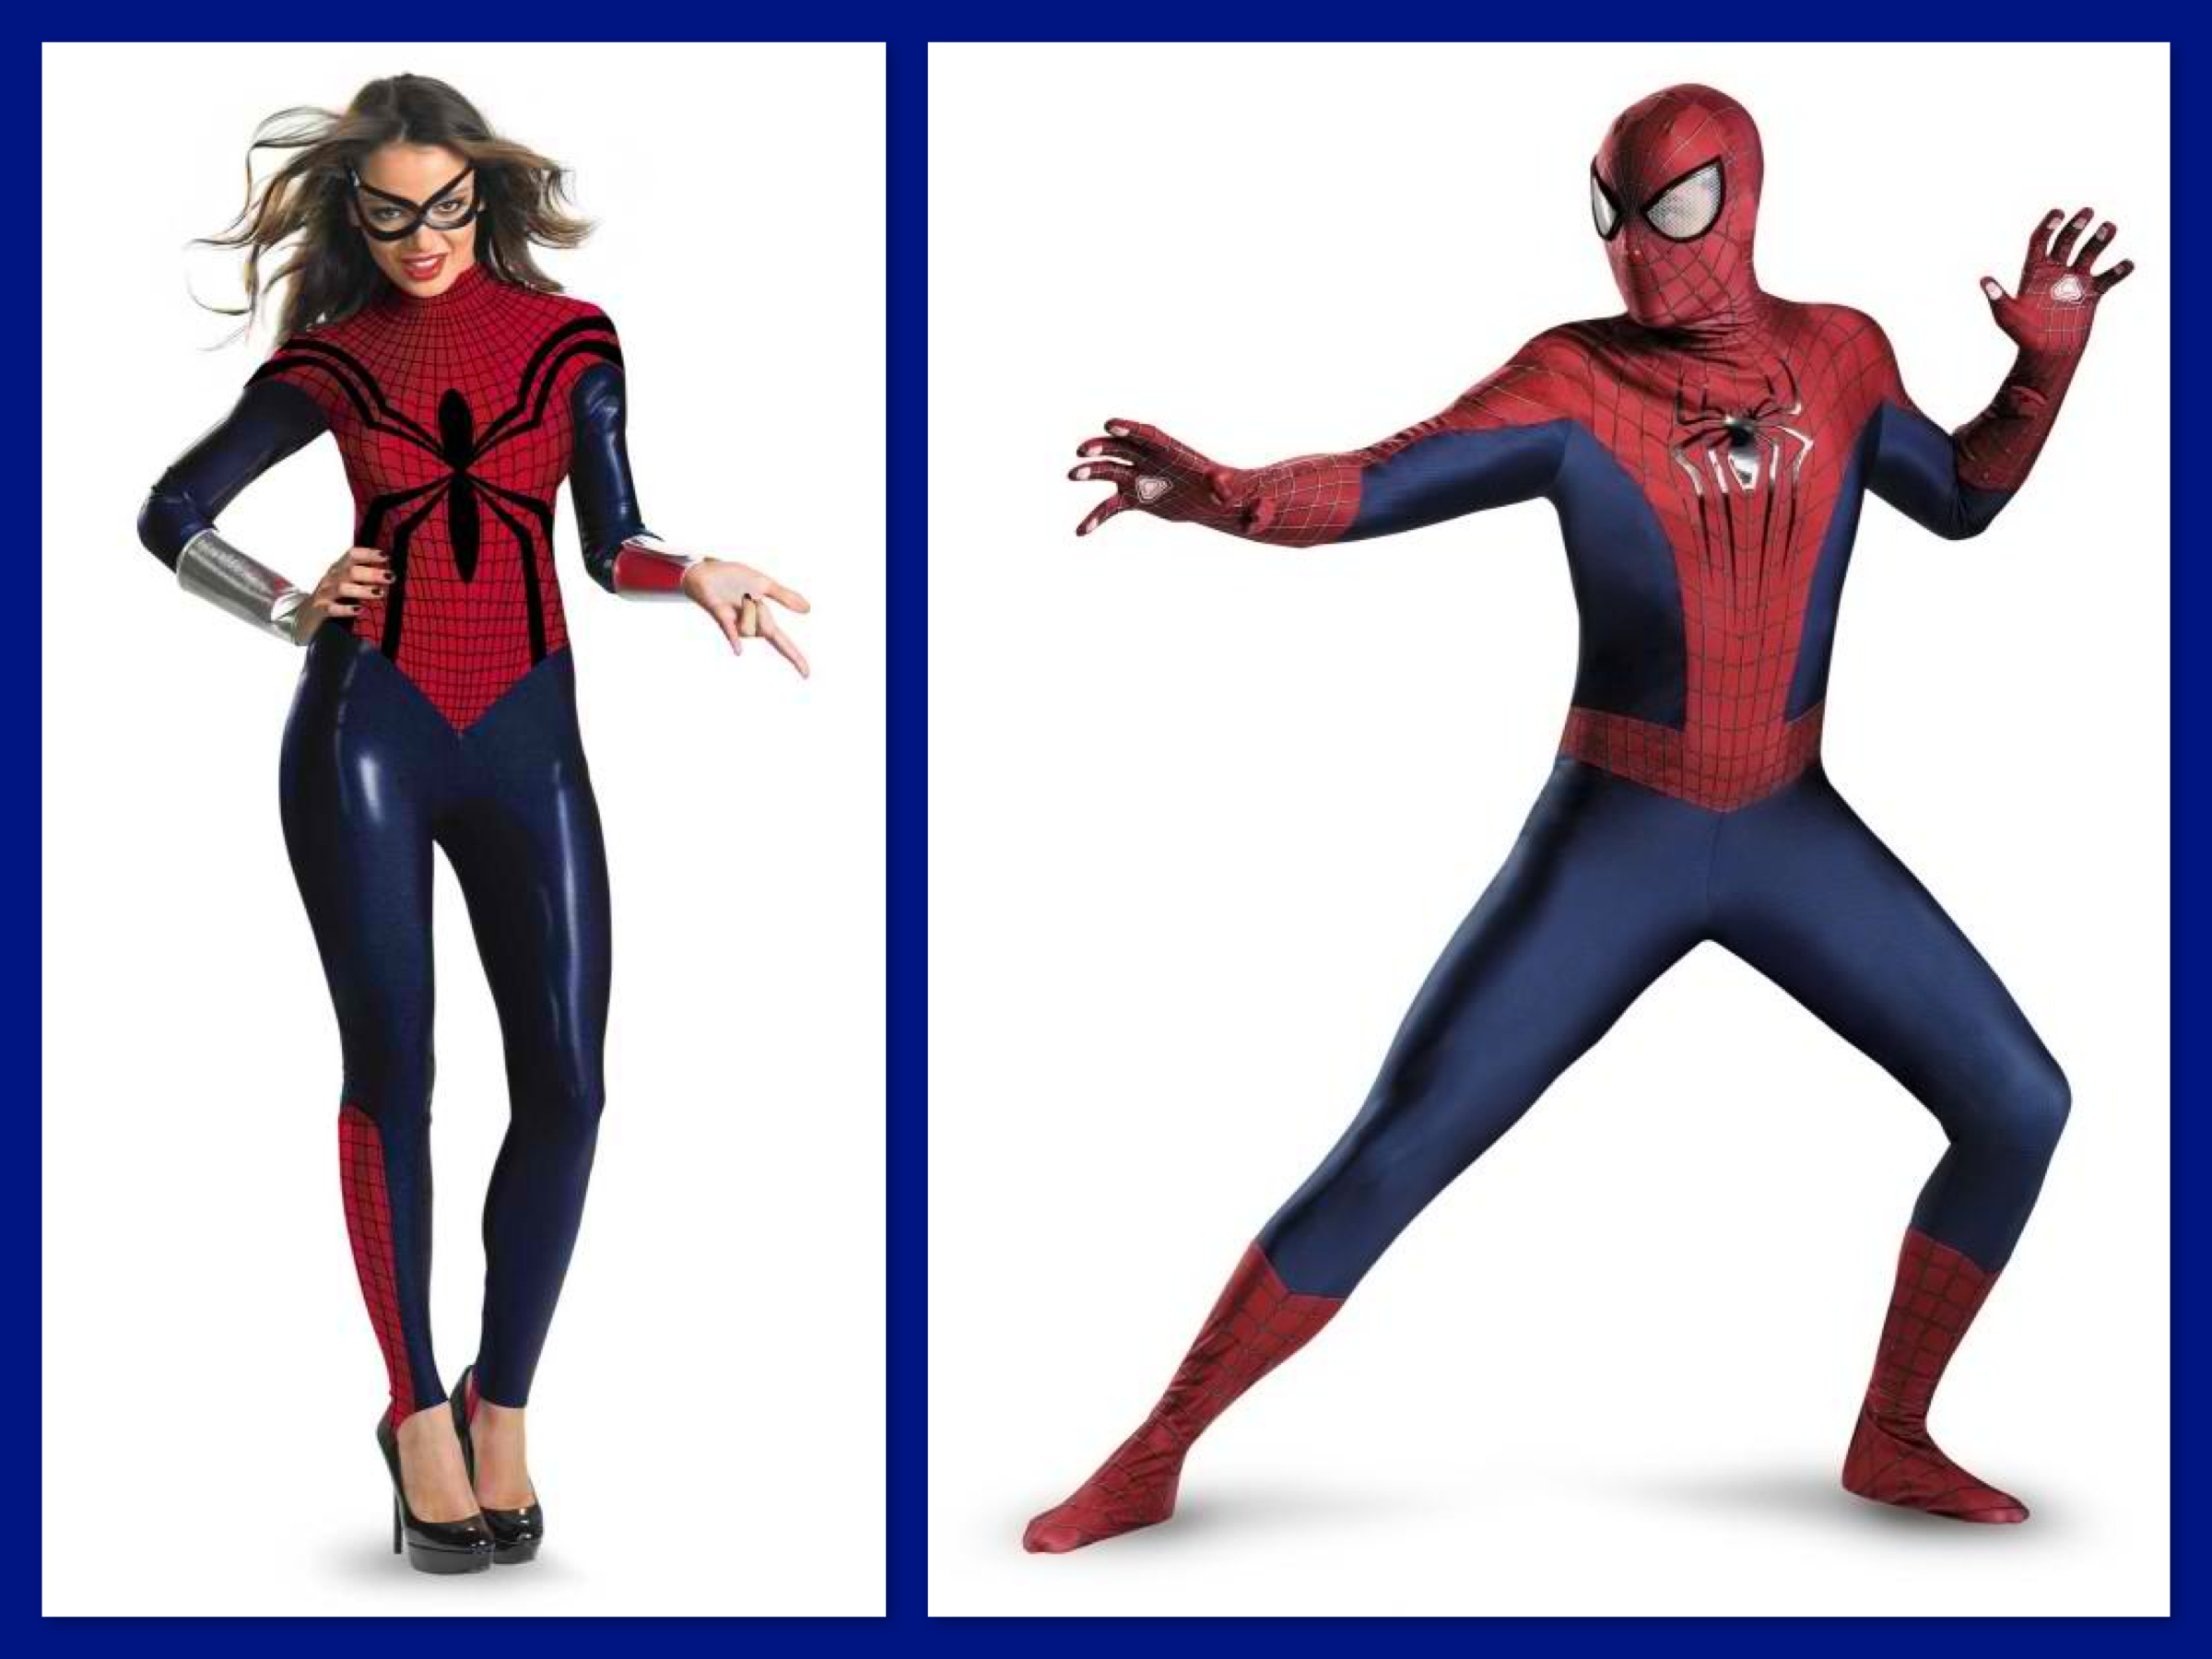 Spider Girl & Spiderman Couples Costumes, Top Trending Halloween Costumes